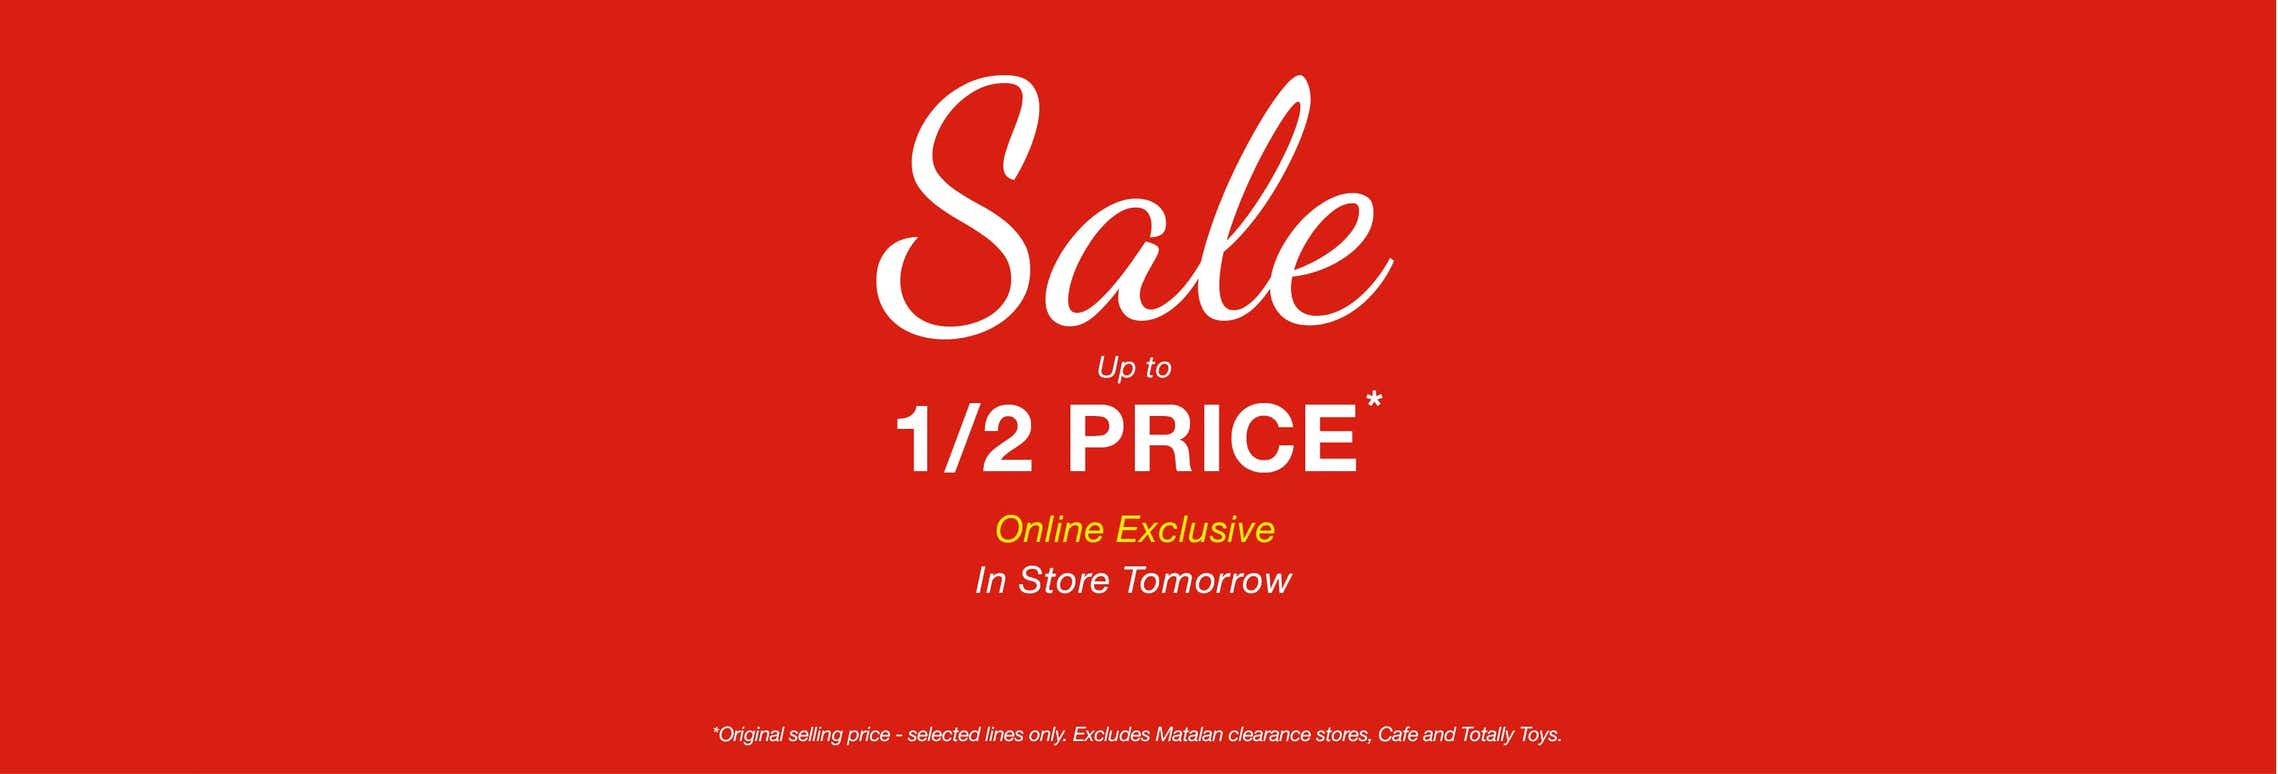 a7ed583ebf82d2 Shop womens sale shop mens sale shop kids sale shop home sale shop all sale